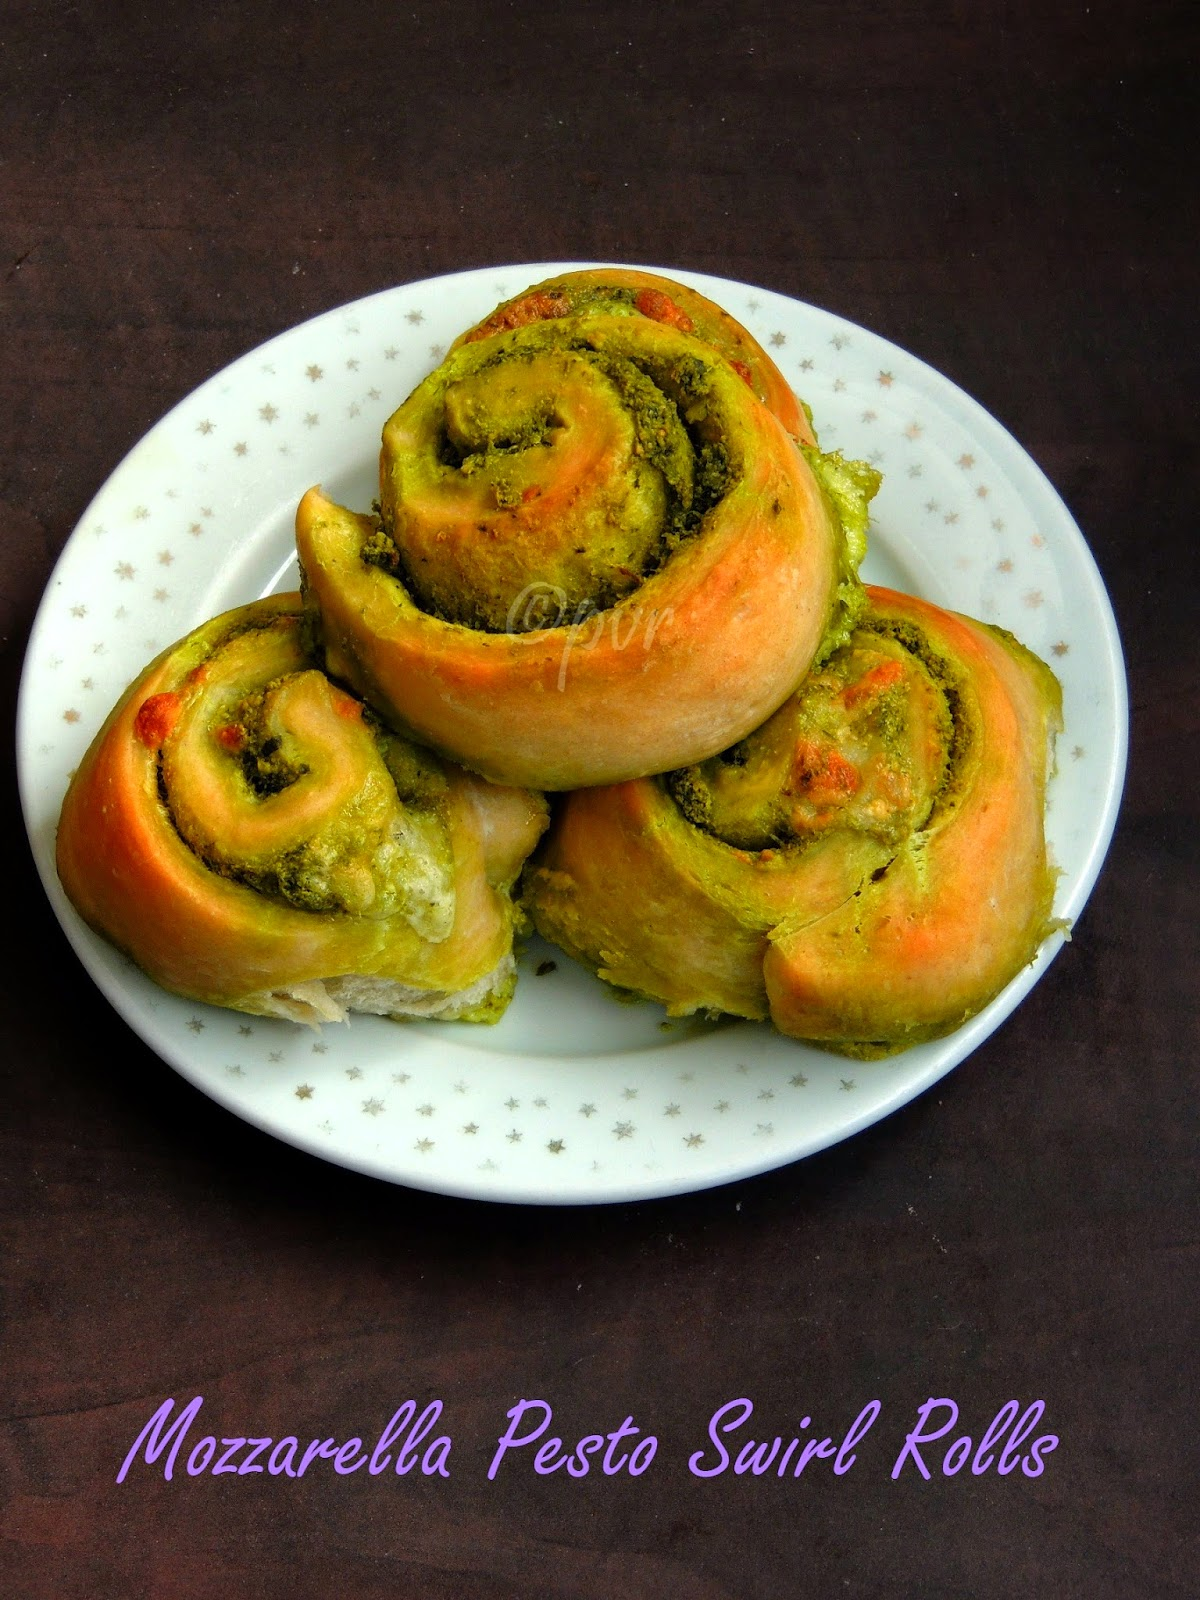 Cheesy Pesto Swirl Rolls